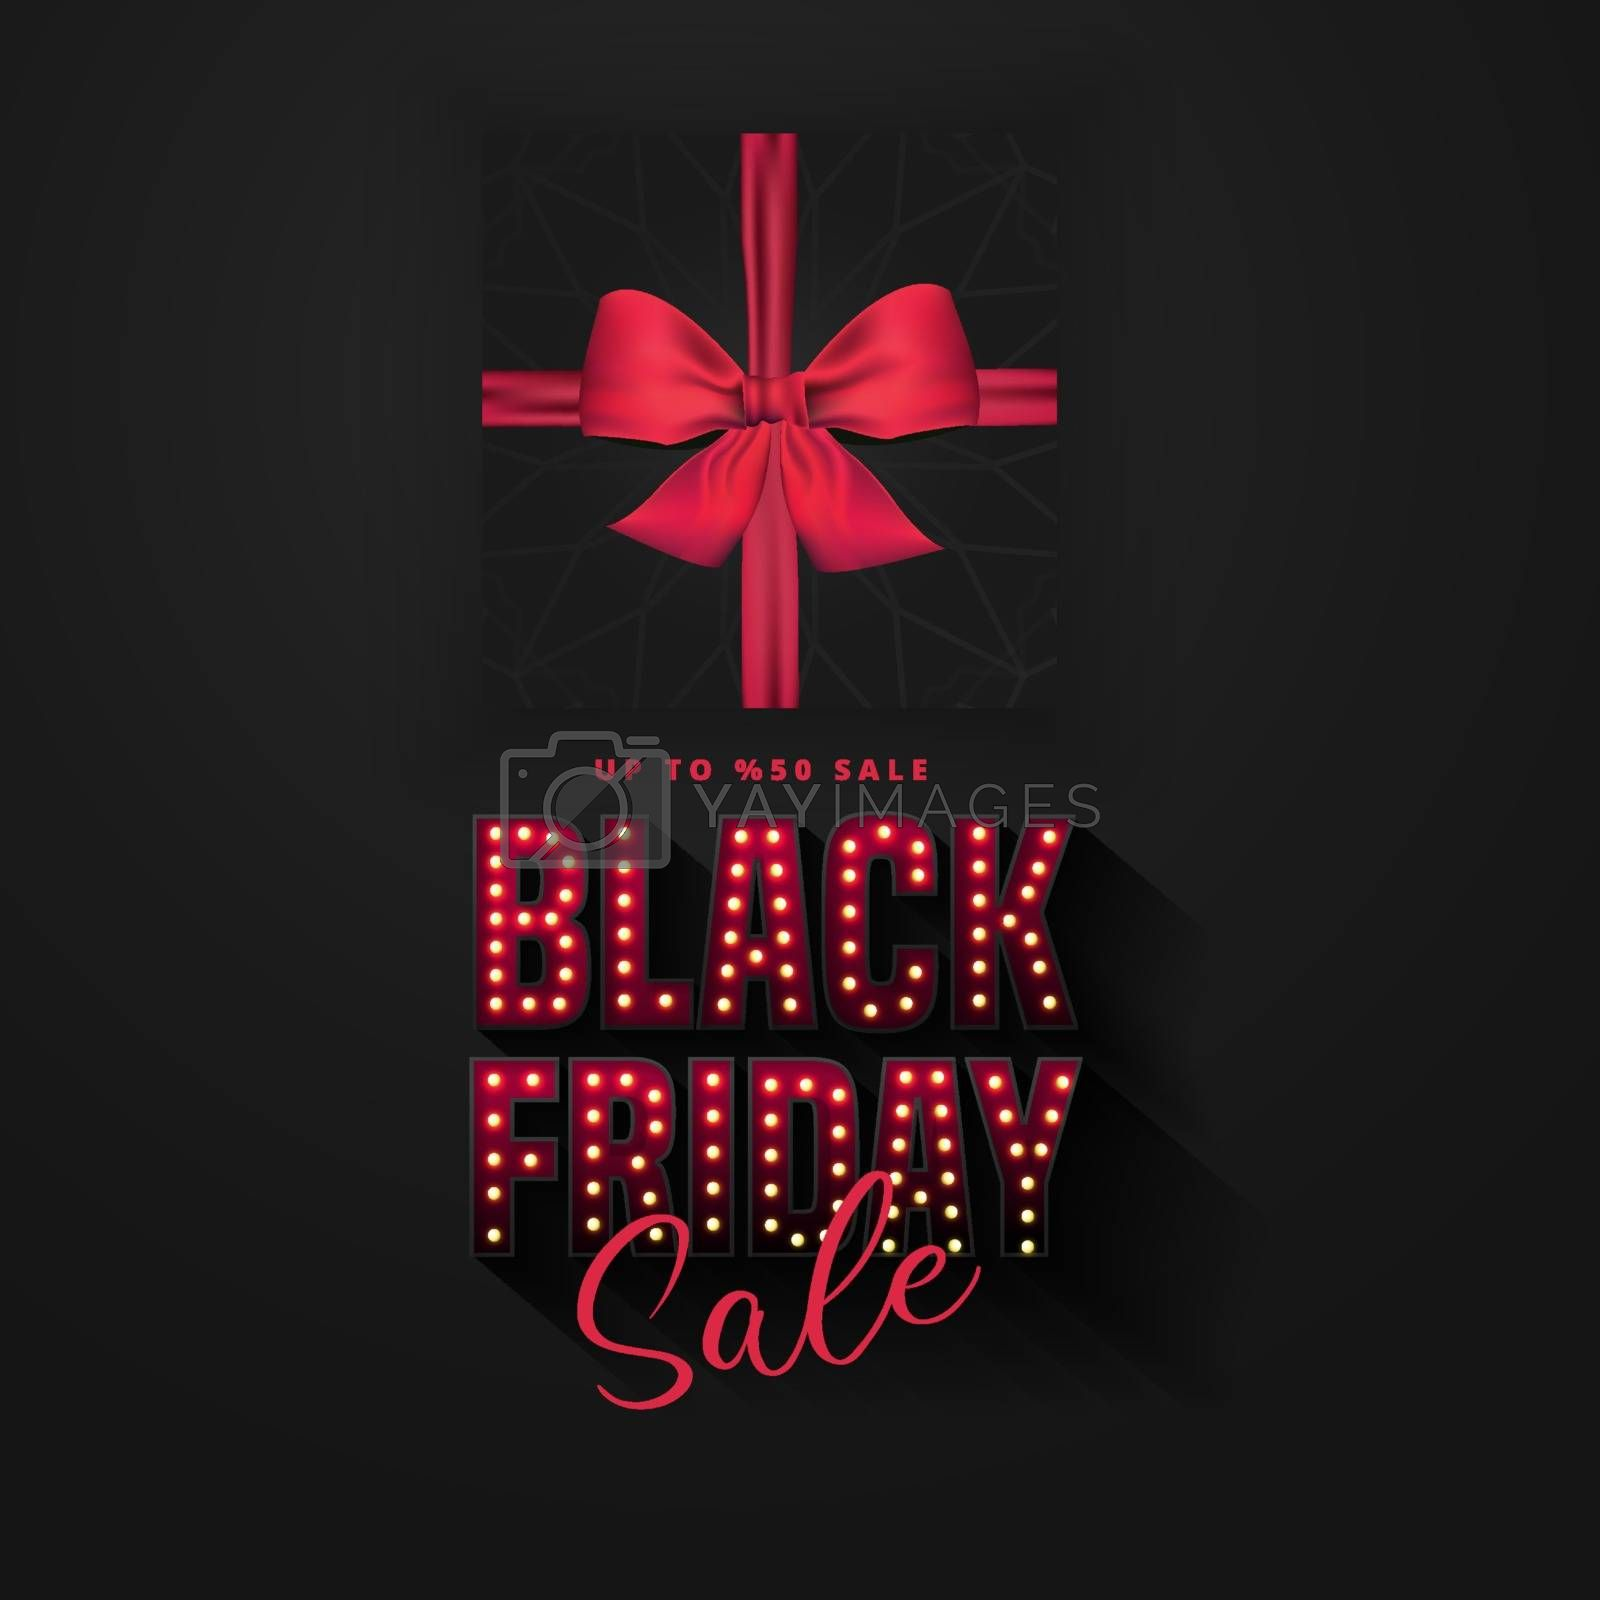 Retro light bulbs sign Black friday sale banner layout design template. Banner and advertising poster design.Vector illustration.Realistic black gift box.